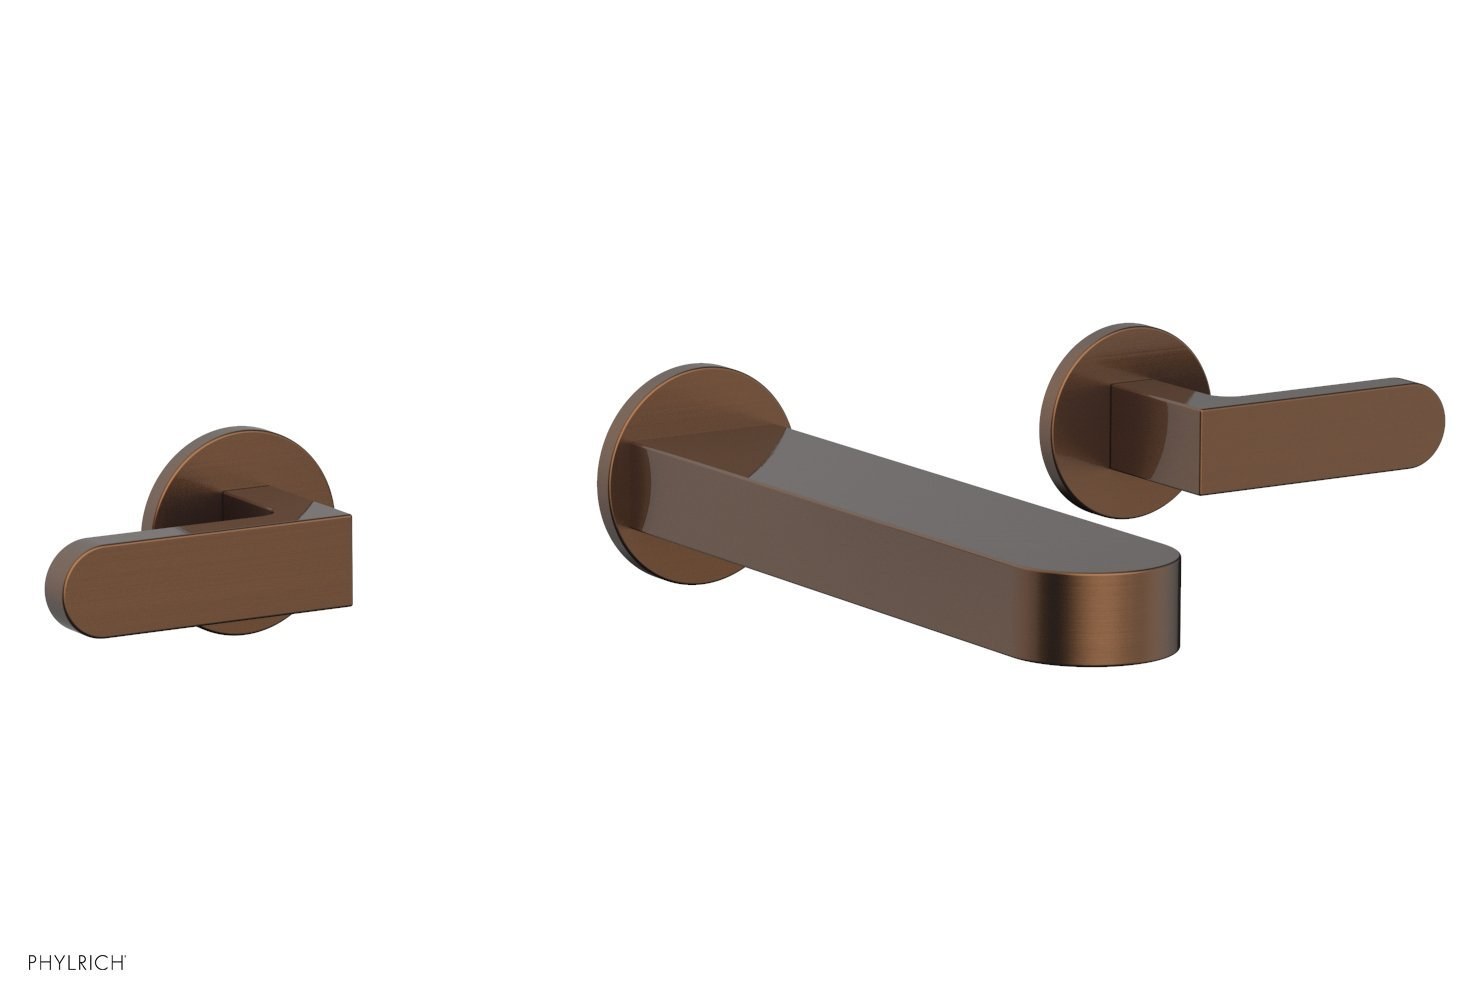 Phylrich 183-12-05A ROND Wall Lavatory Set - Lever Handles - Antique Copper